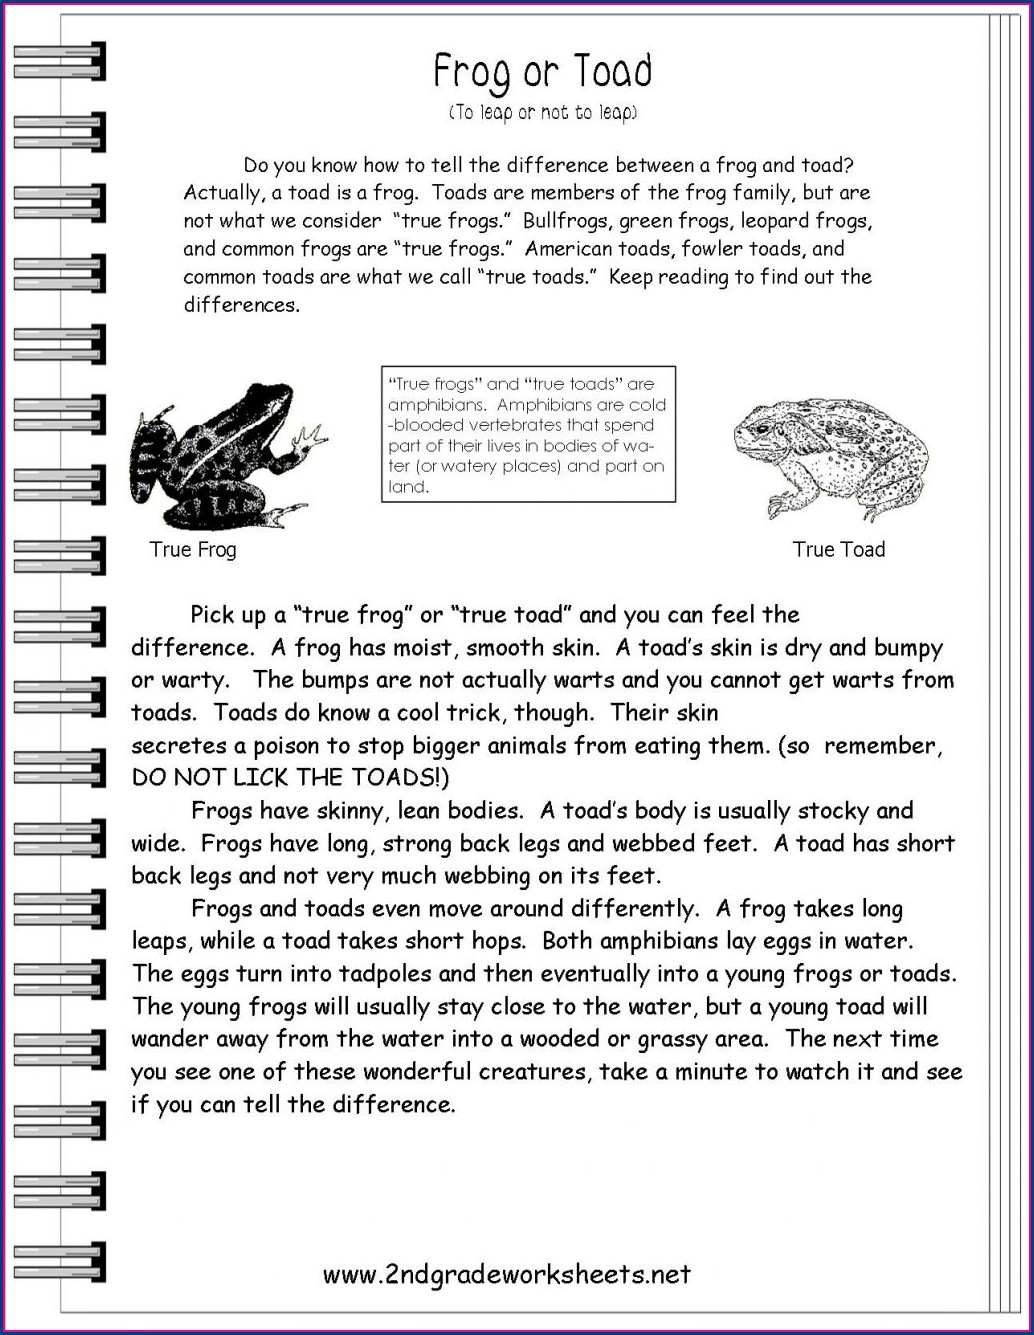 Reading Comprehension Exercises With Answers Pdf